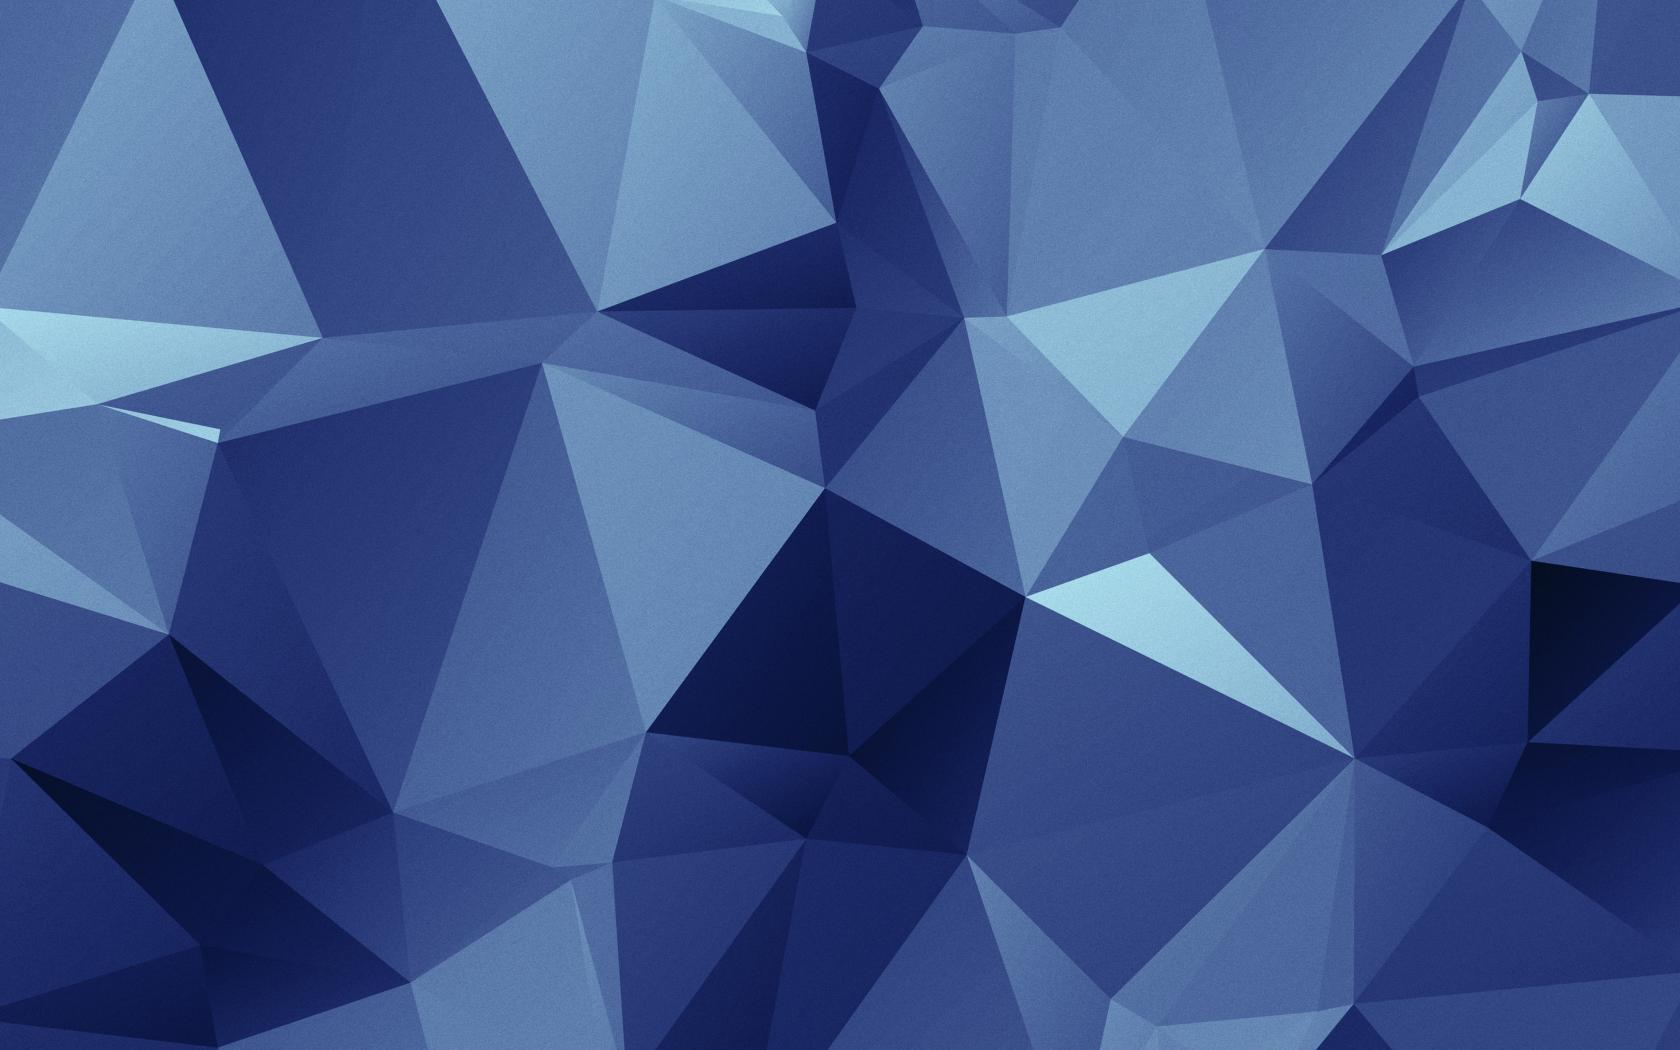 Low Poly Background For Powerpoint , HD Wallpaper & Backgrounds